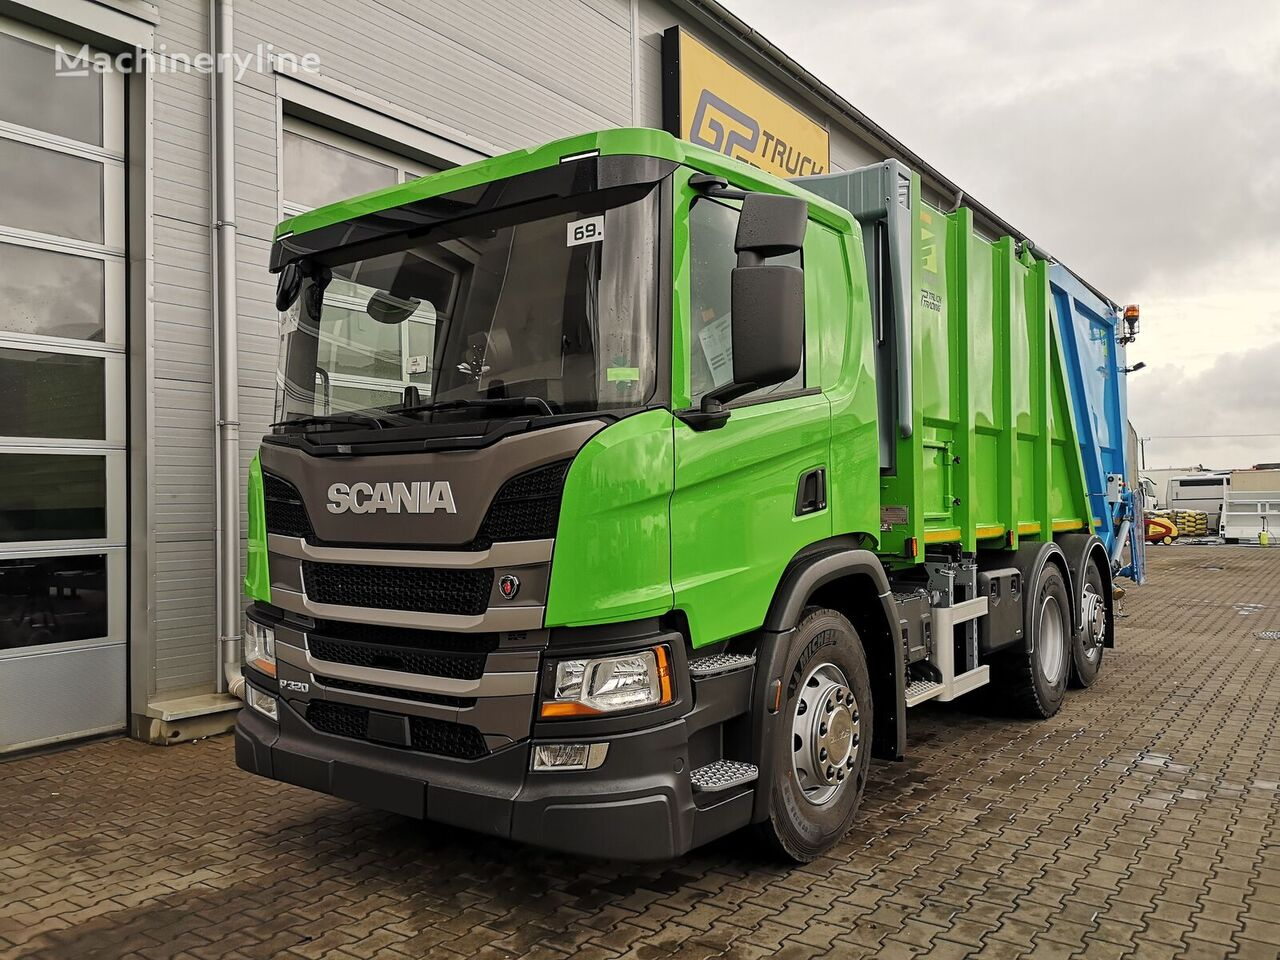 SCANIA P320 garbage truck